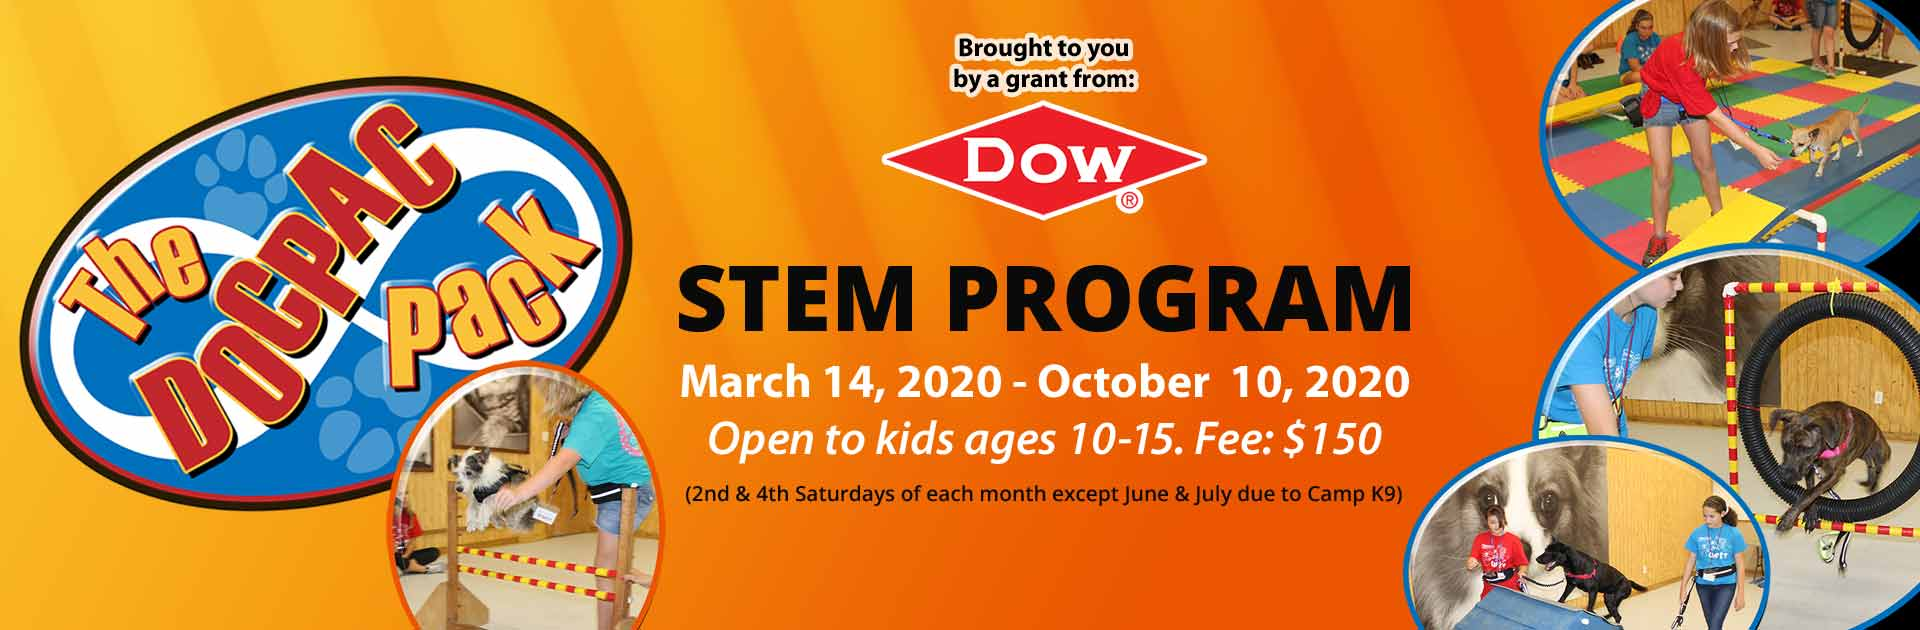 Stem Program  March 14, 2020-October 10, 2020 open to kids ages 10-15. Fee: $150